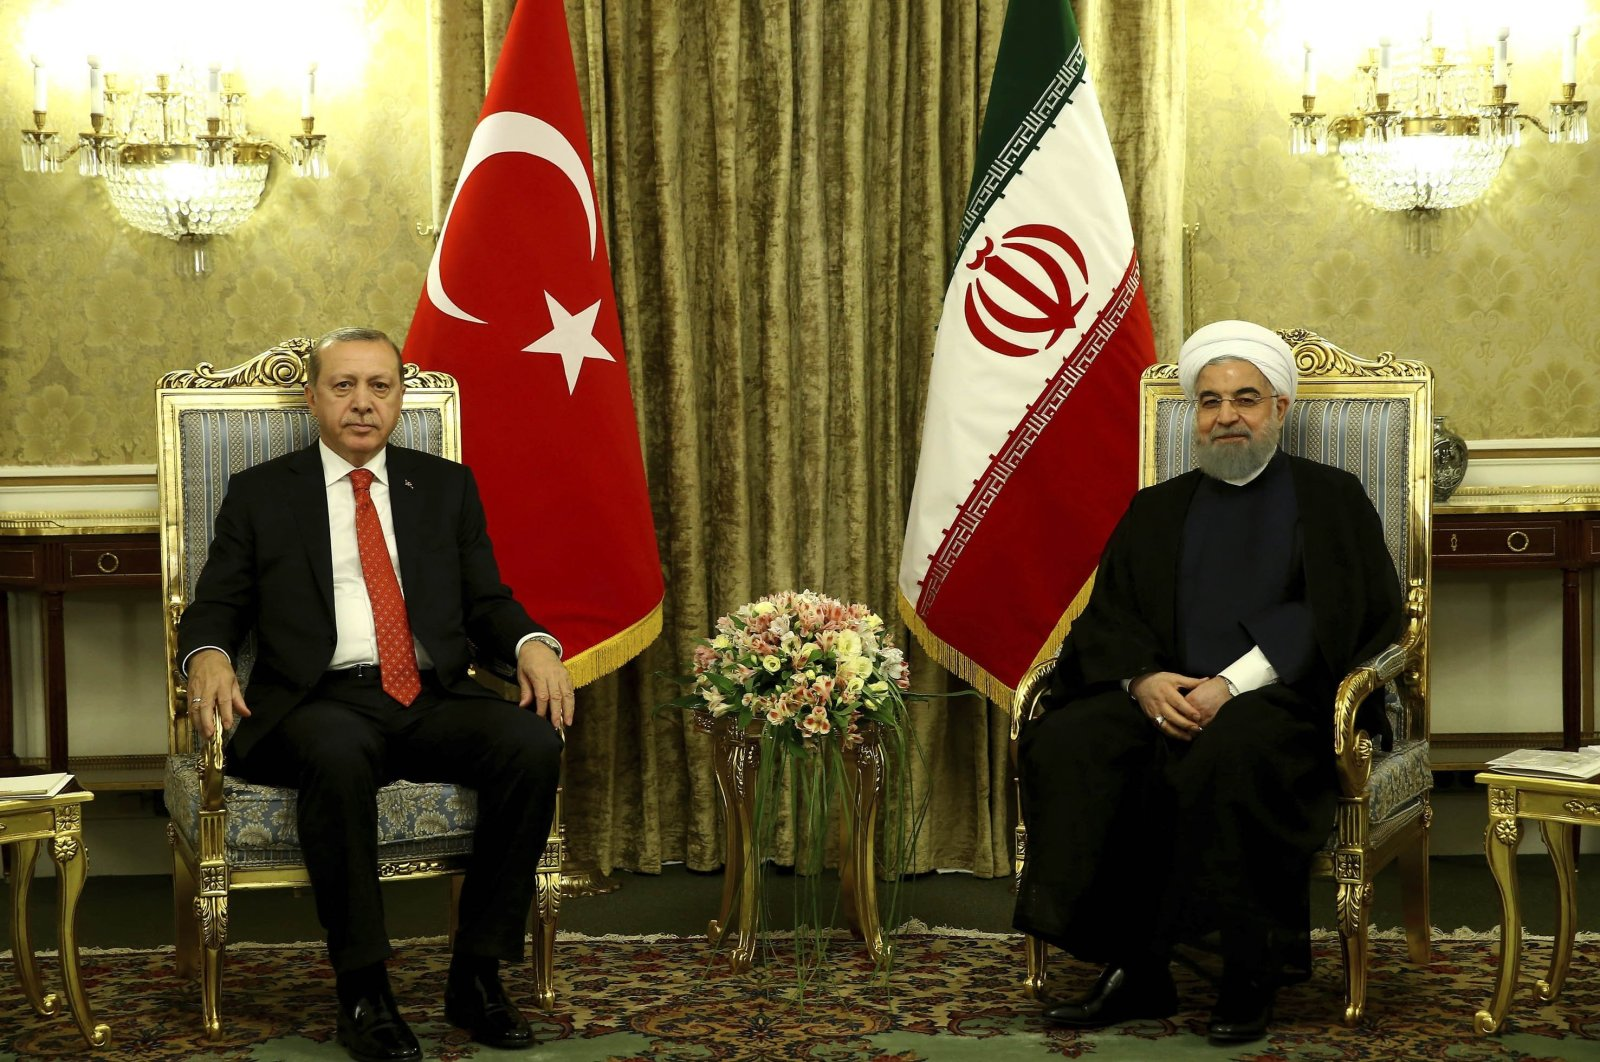 President Recep Tayyip Erdoğan (L) and Iranian President Hassan Rouhani are seen during a meeting in Tehran, Iran, Oct. 4, 2017. (AP Photo)